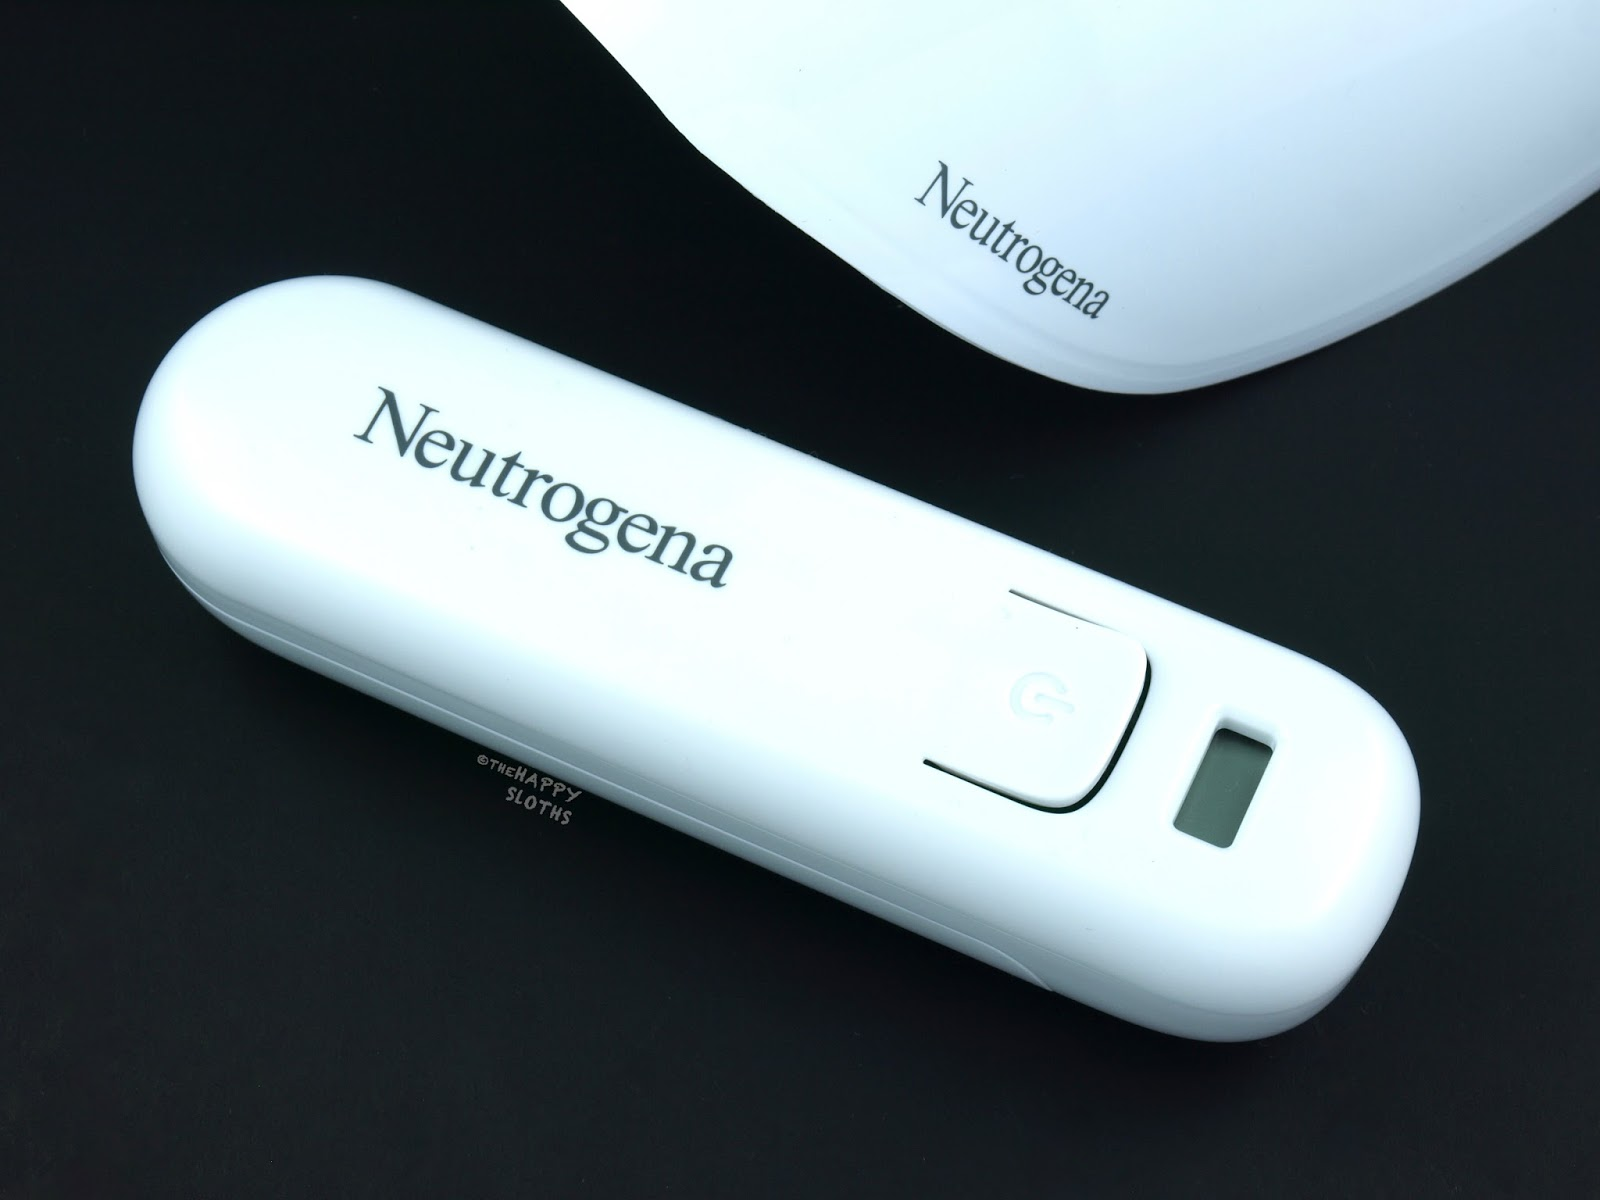 Neutrogena Light Therapy Acne Mask: Review